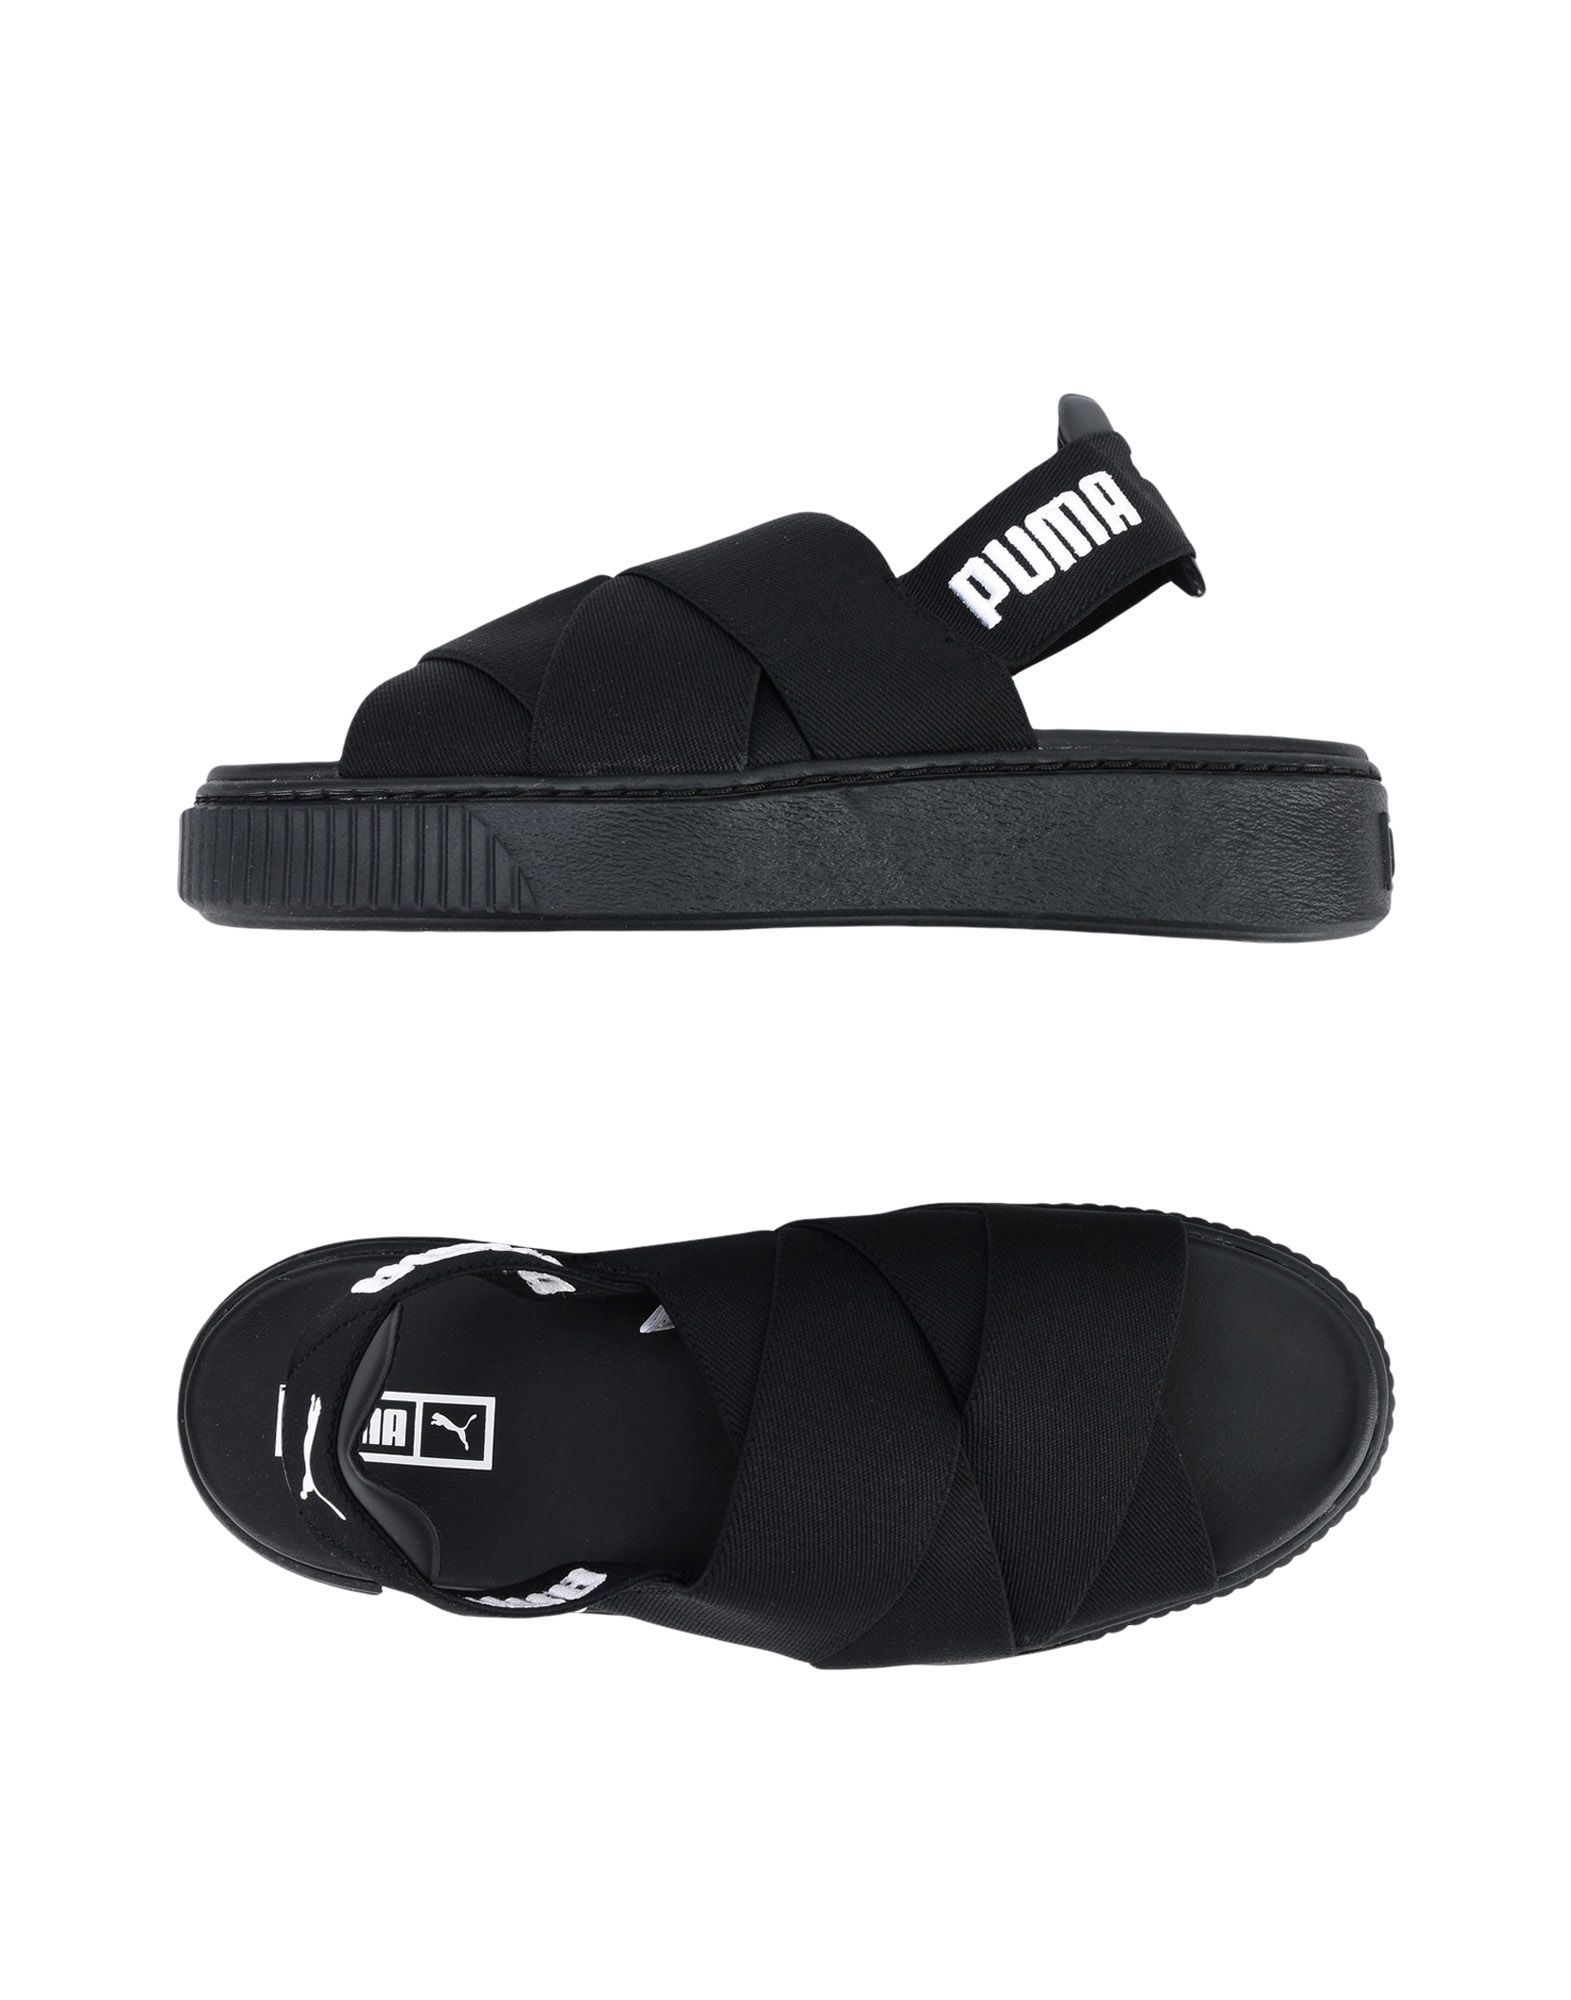 Puma Puma Platform Sandal - Sandals - Women  Puma Sandals online on  Women United Kingdom - 11476207WA 8f2700